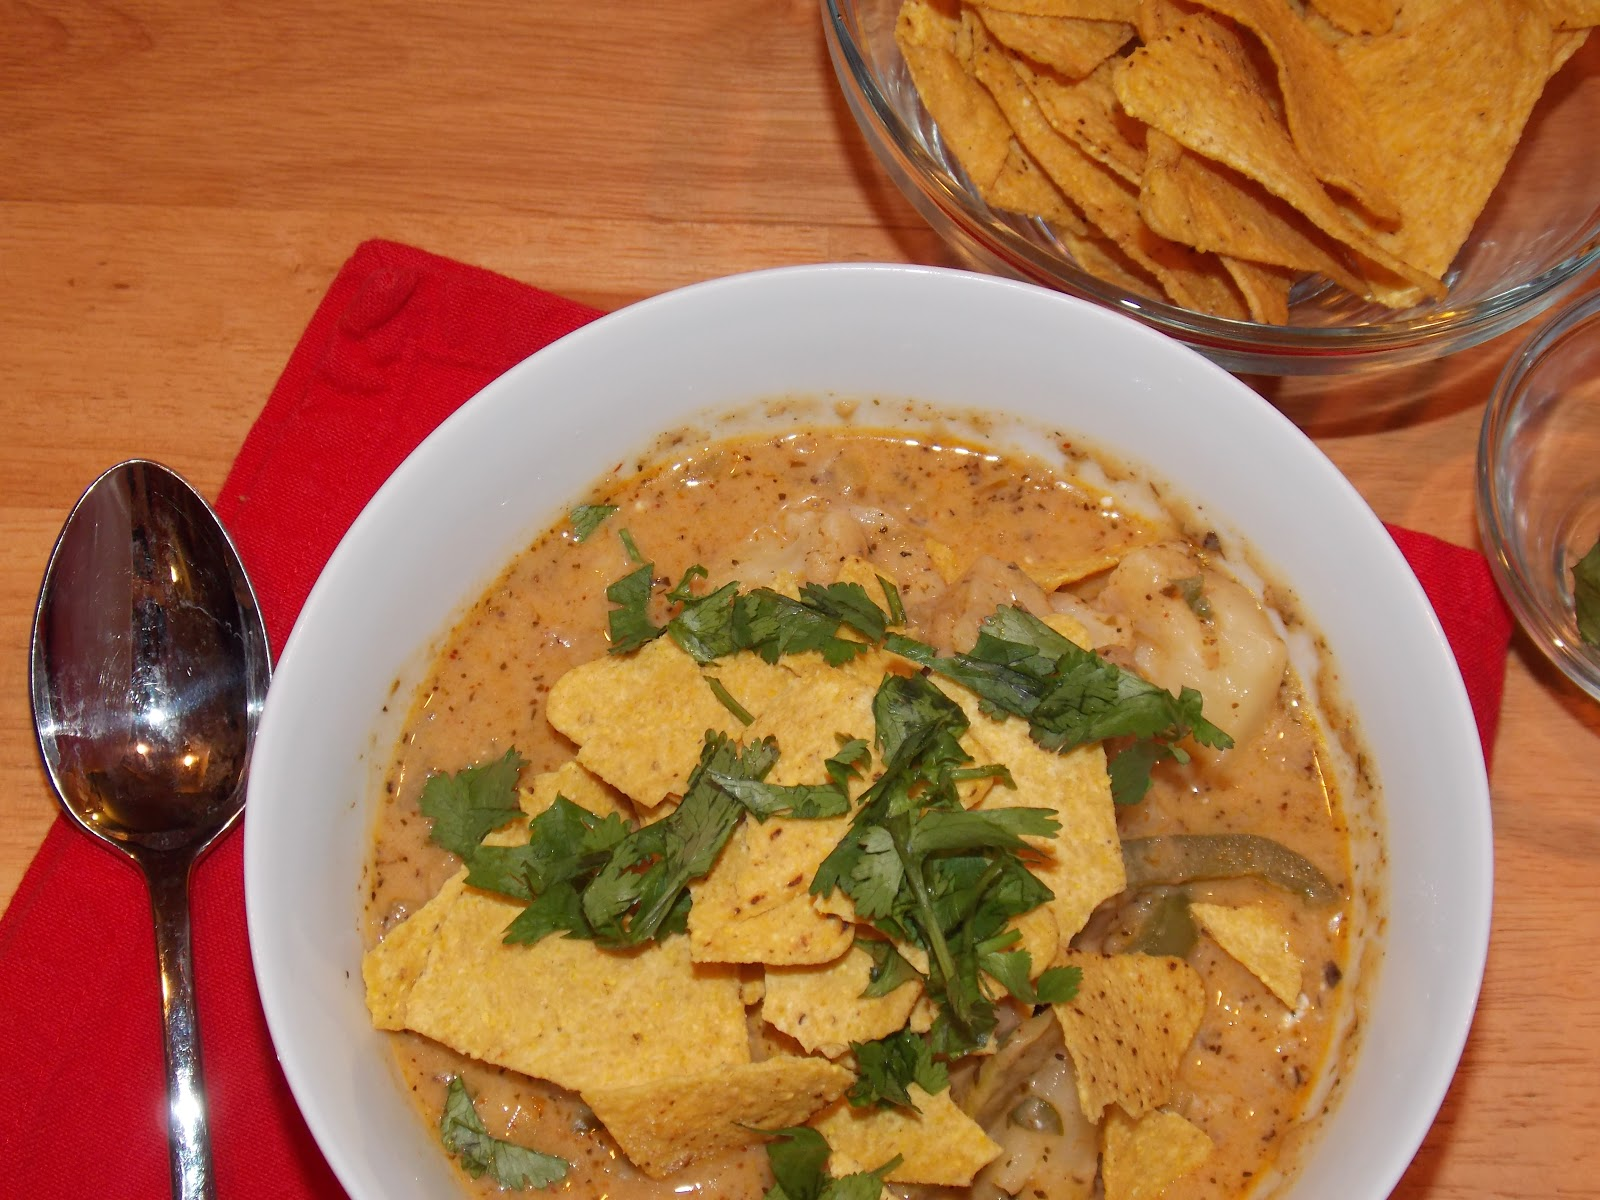 This chili is creamy and cheesy with a nice balance of heat from ...